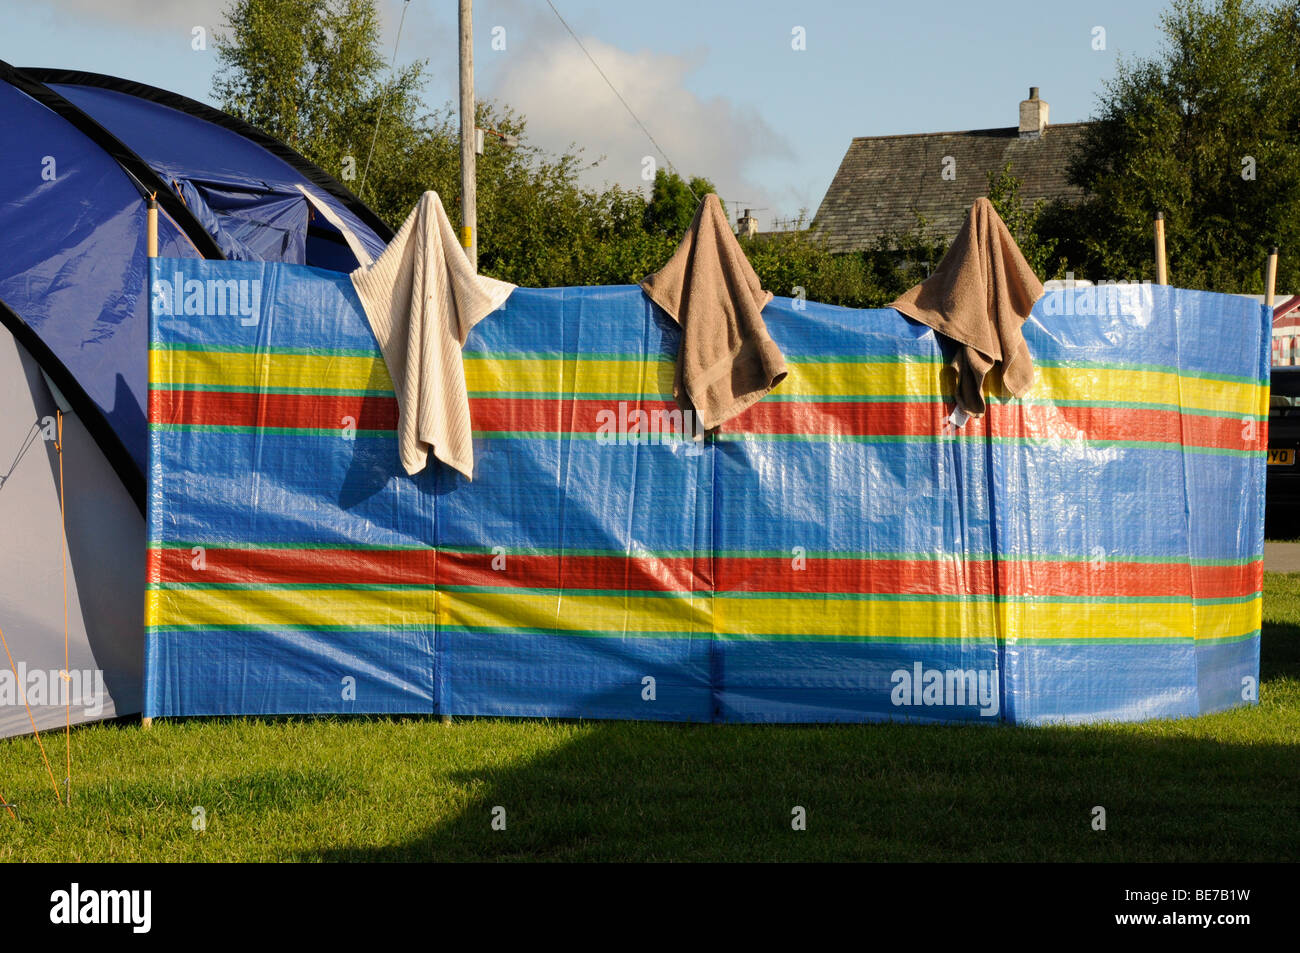 3 towels on a wind cheater dry. Camping in the Lake District on a stay-cation, Cumbria. United Kingdom. - Stock Image